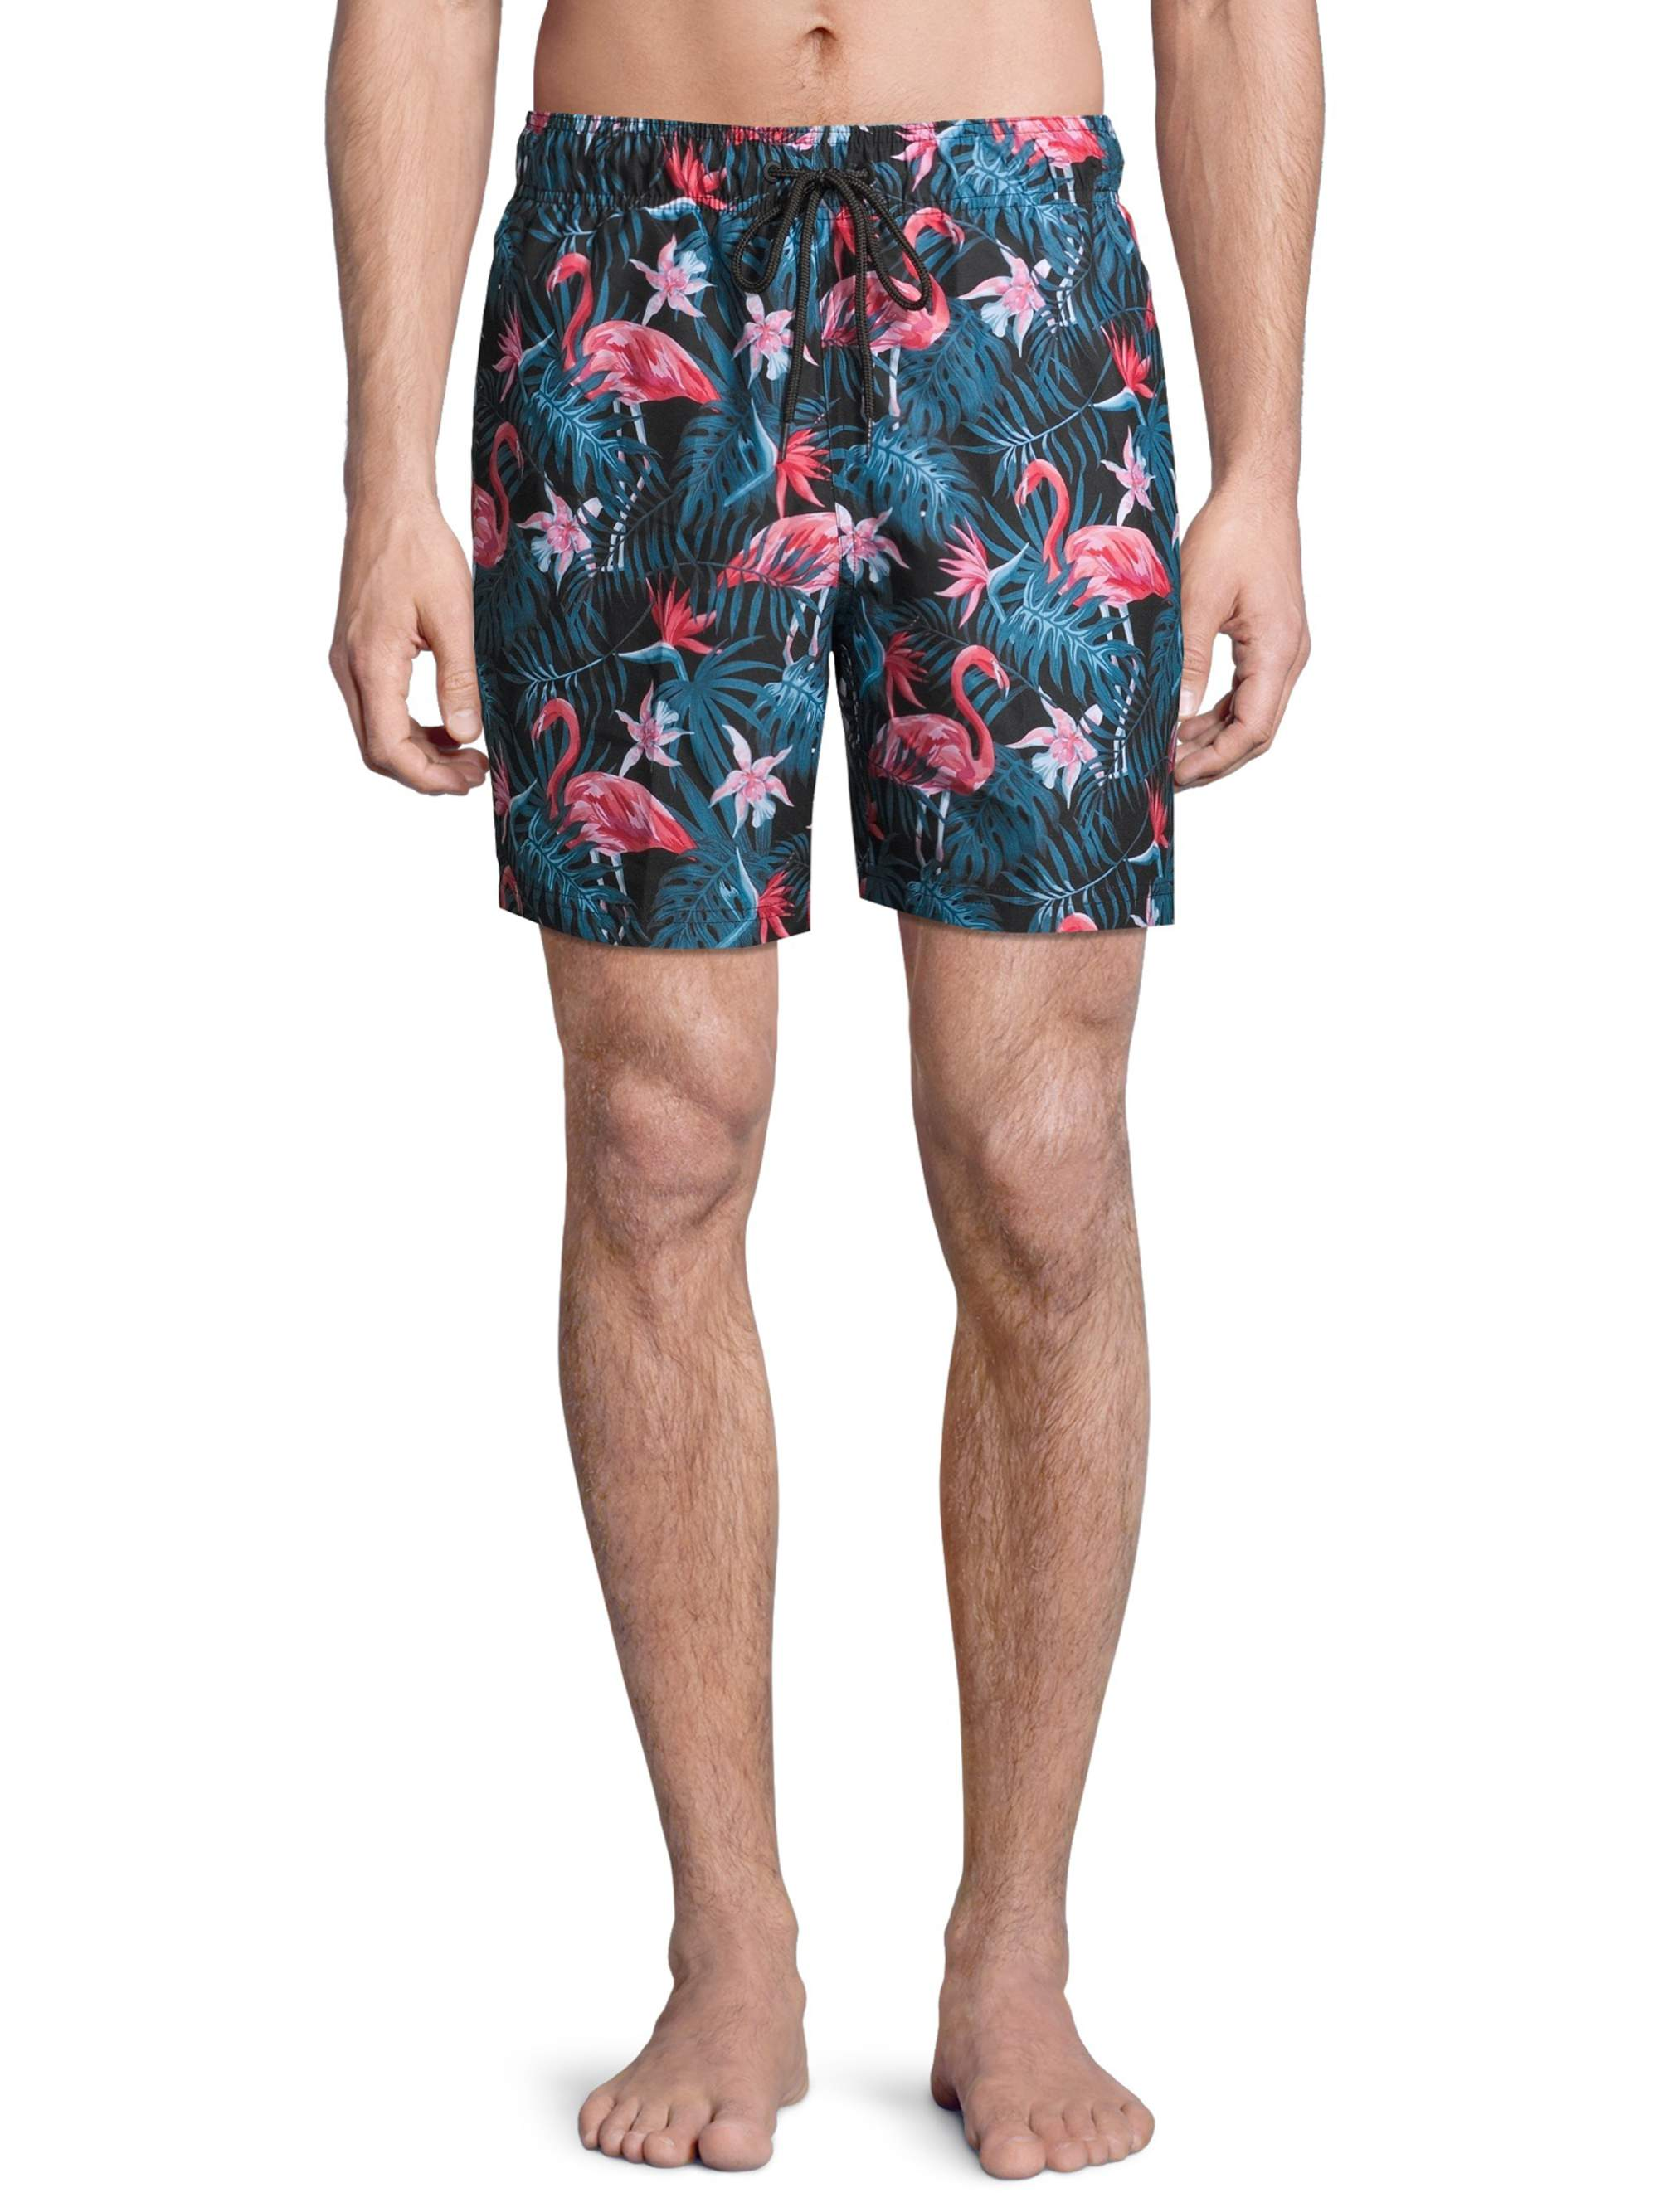 Beach Shorts Walking Flamingos Mens Board Shorts